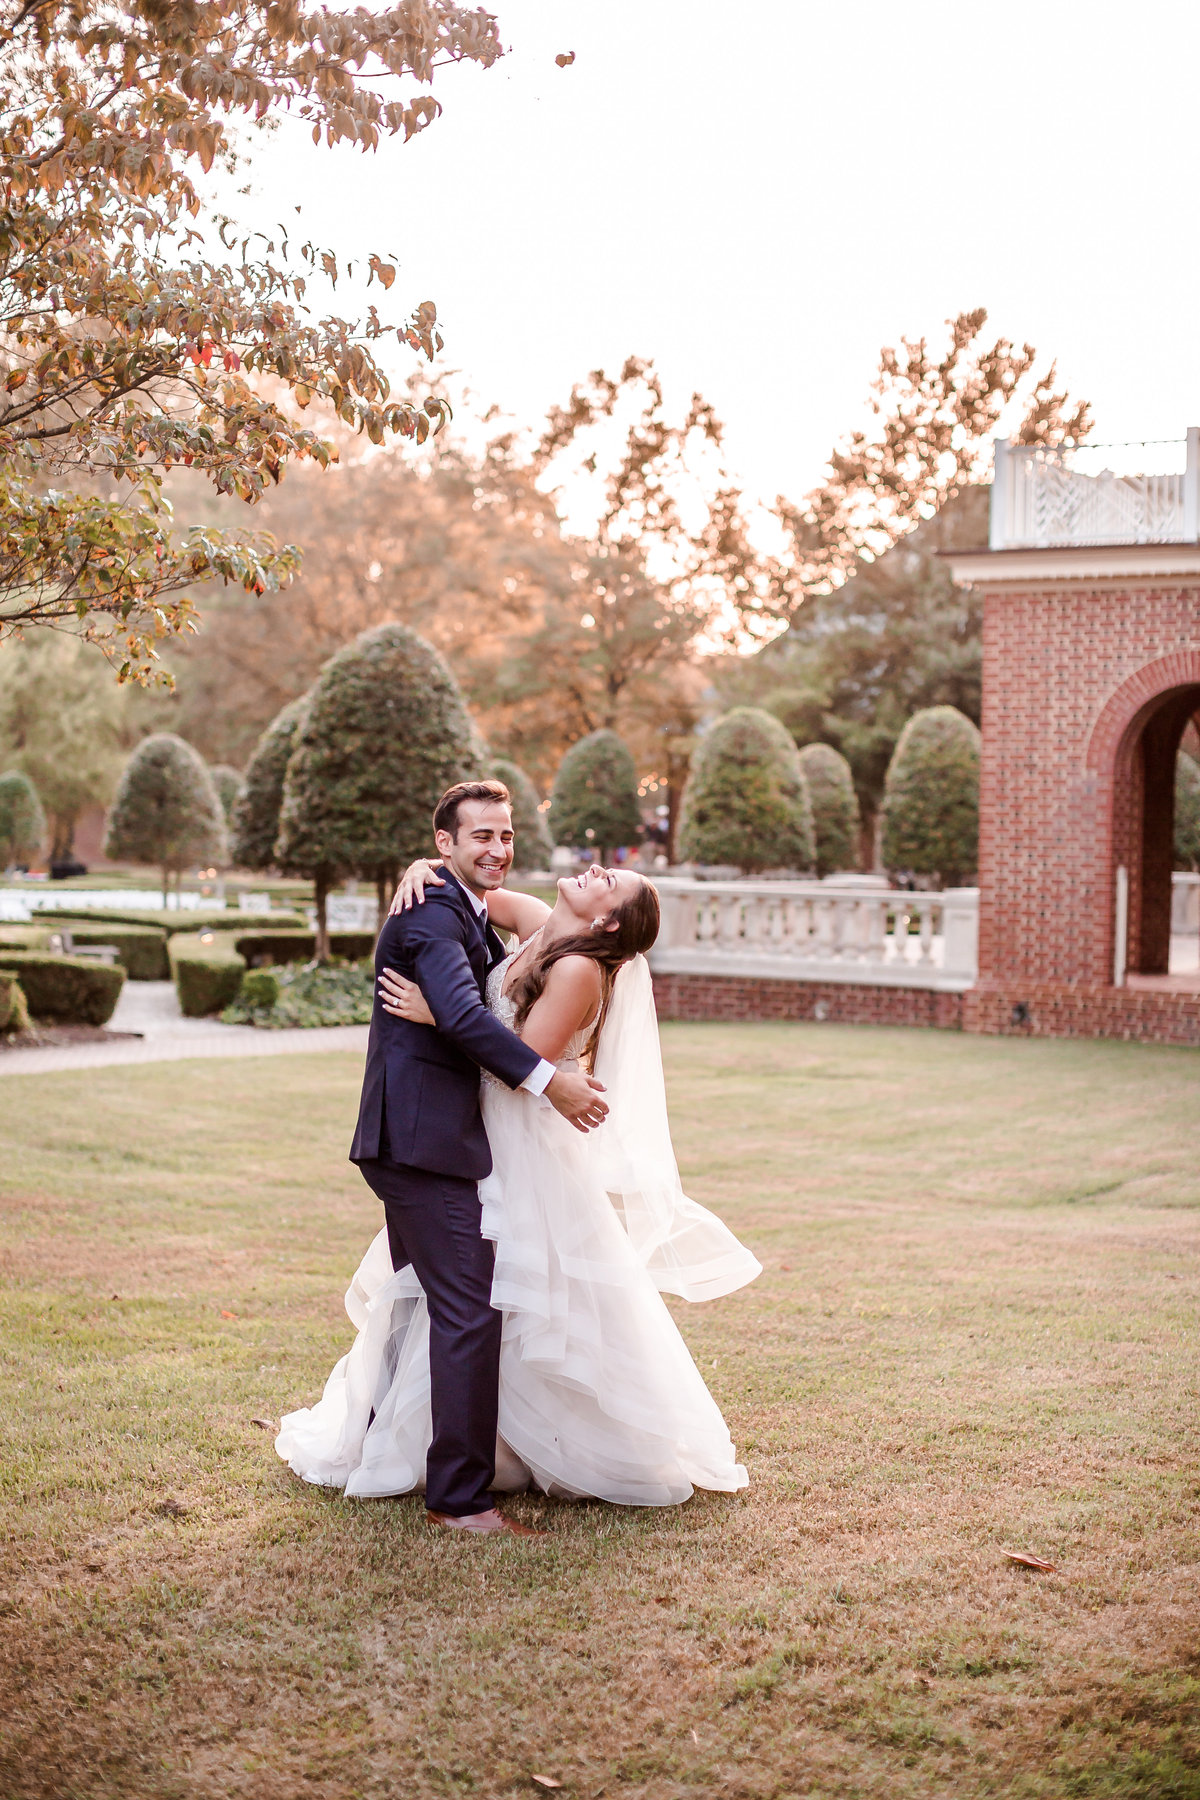 meghan lupyan hampton roads wedding photographer164